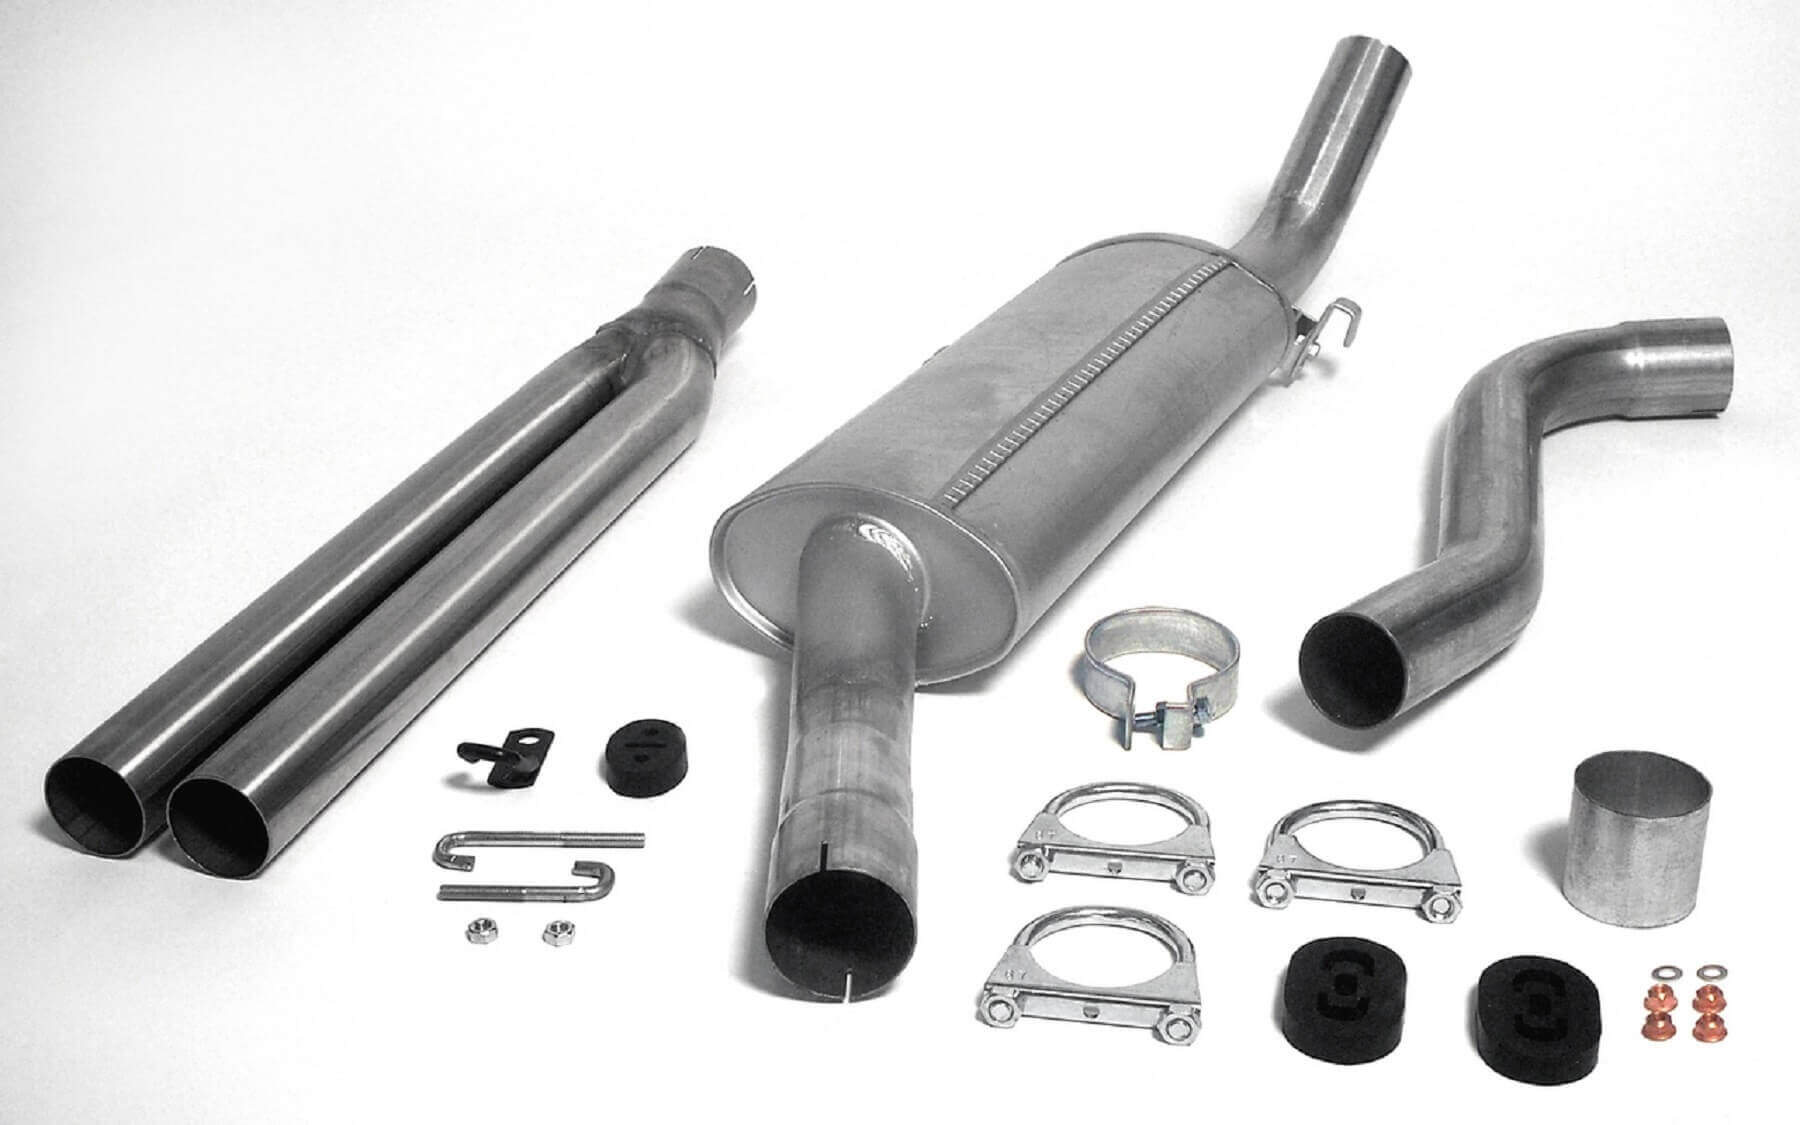 Saab 900 Turbo Jetex Performance Aluminised Steel Half Exhaust System with Twin Round 57mm Tail Pipes